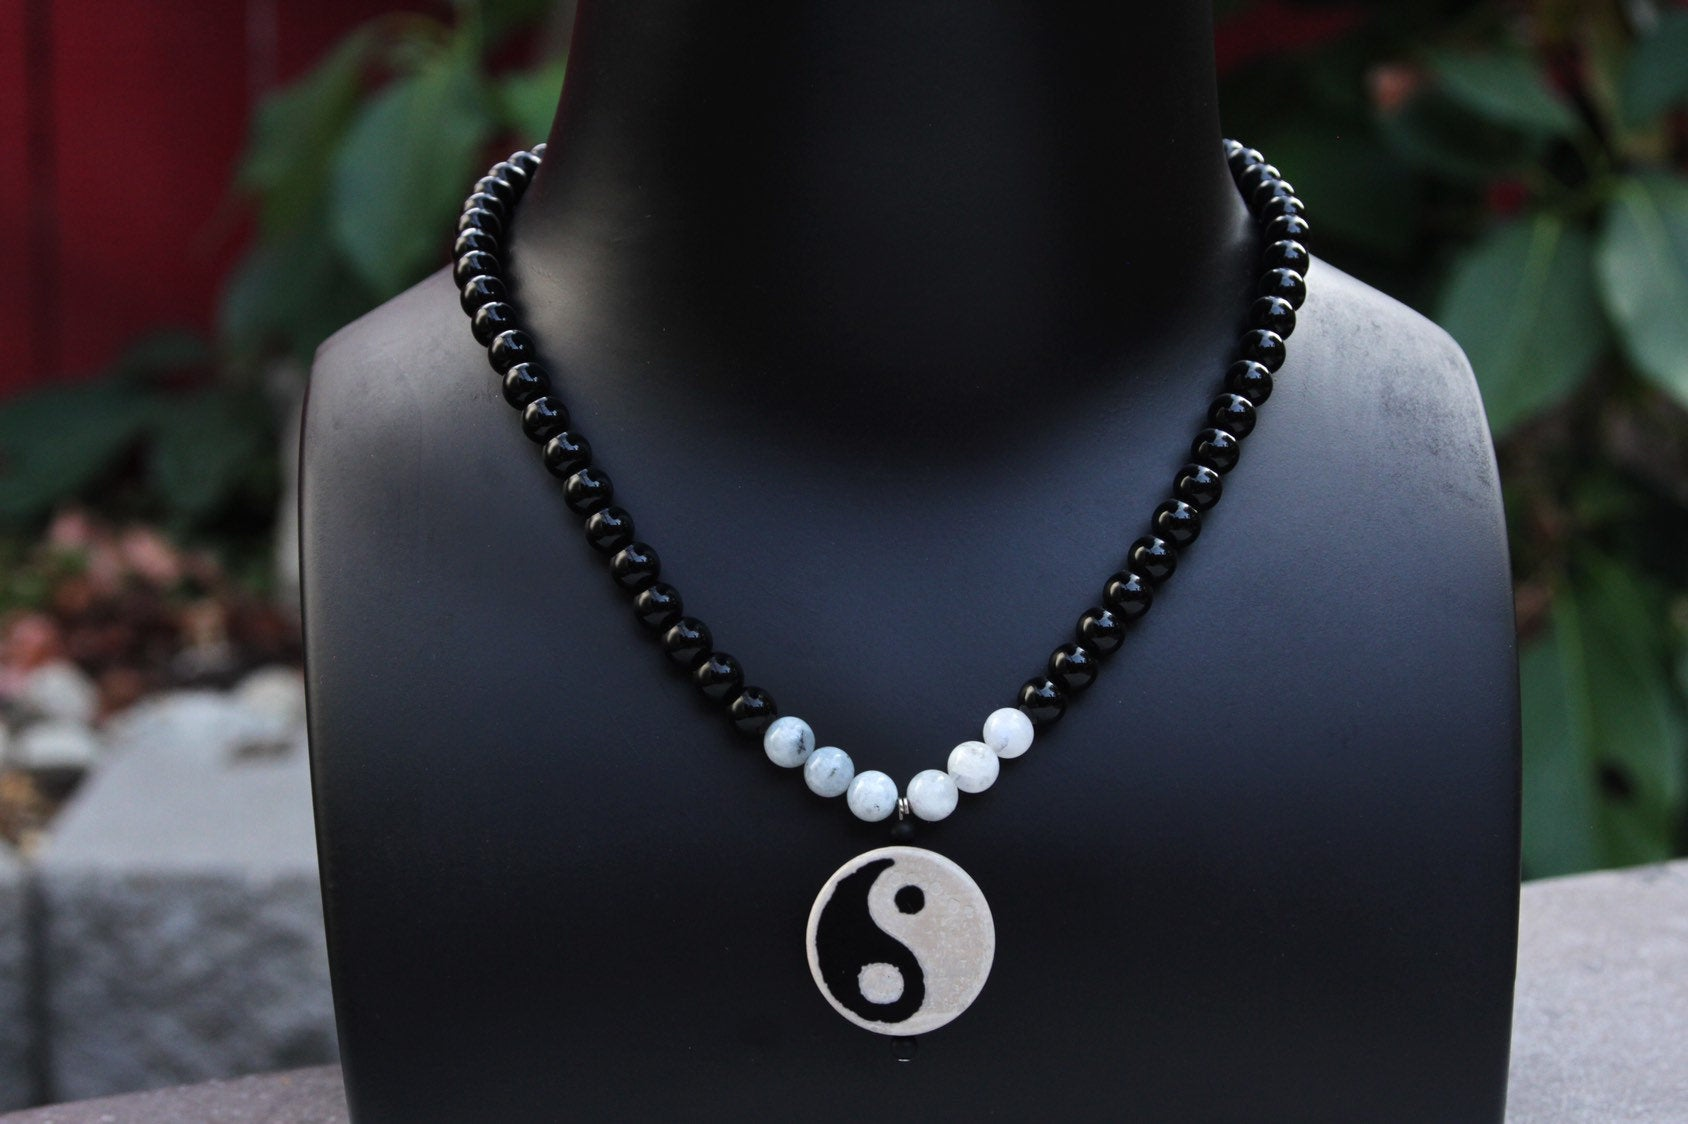 Men's Black Jasper, Moonstone and Agate Yin Yang Necklace